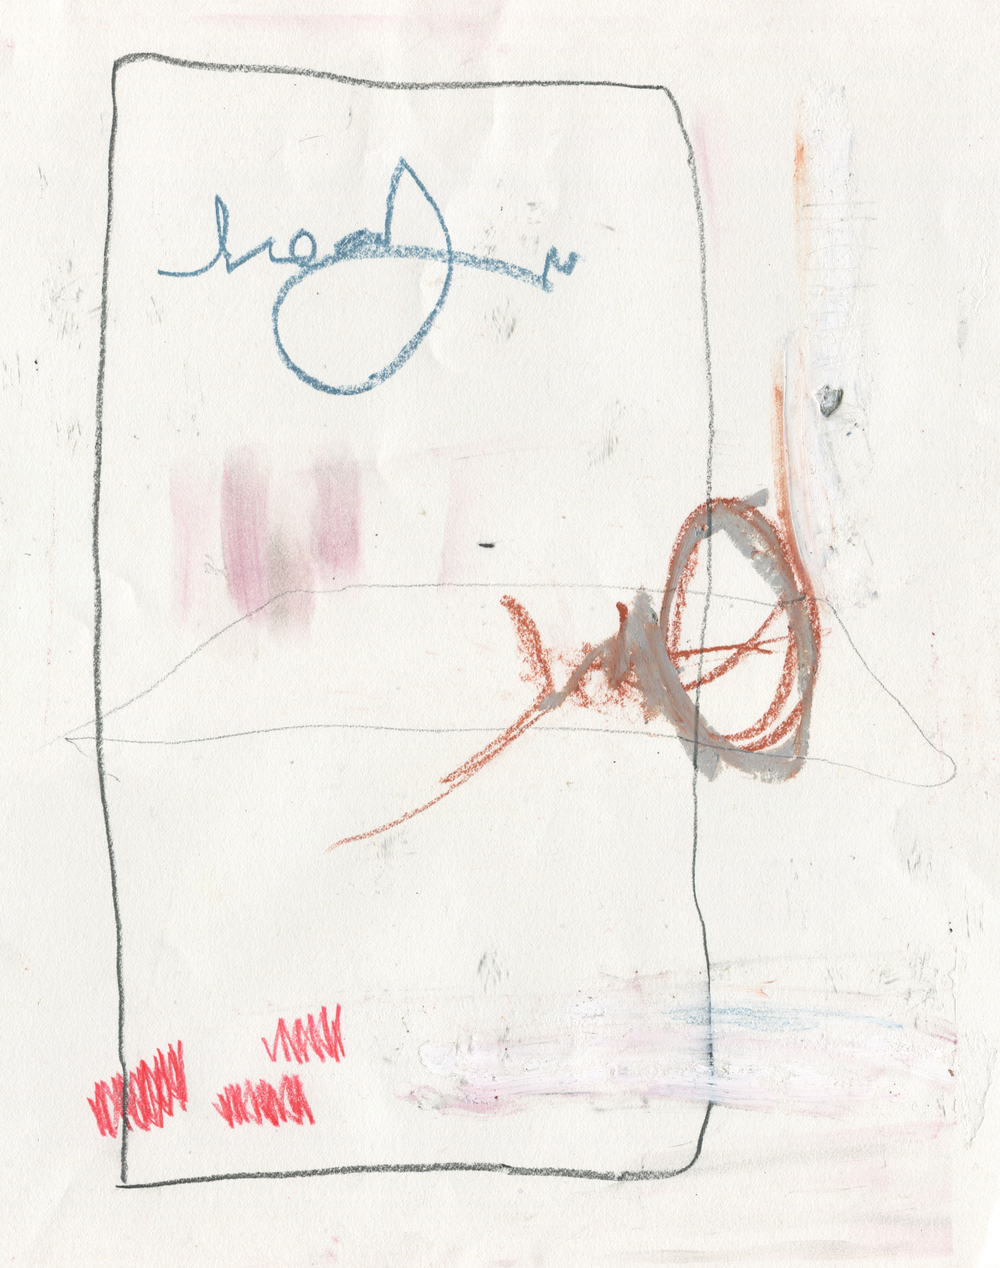 Urban Floor Plans , 2016  14 x 11 inches  Crayon, Conte Crayon, Colored Pencil, Oil Stick, Graphite, and Oil Pastel on Paper